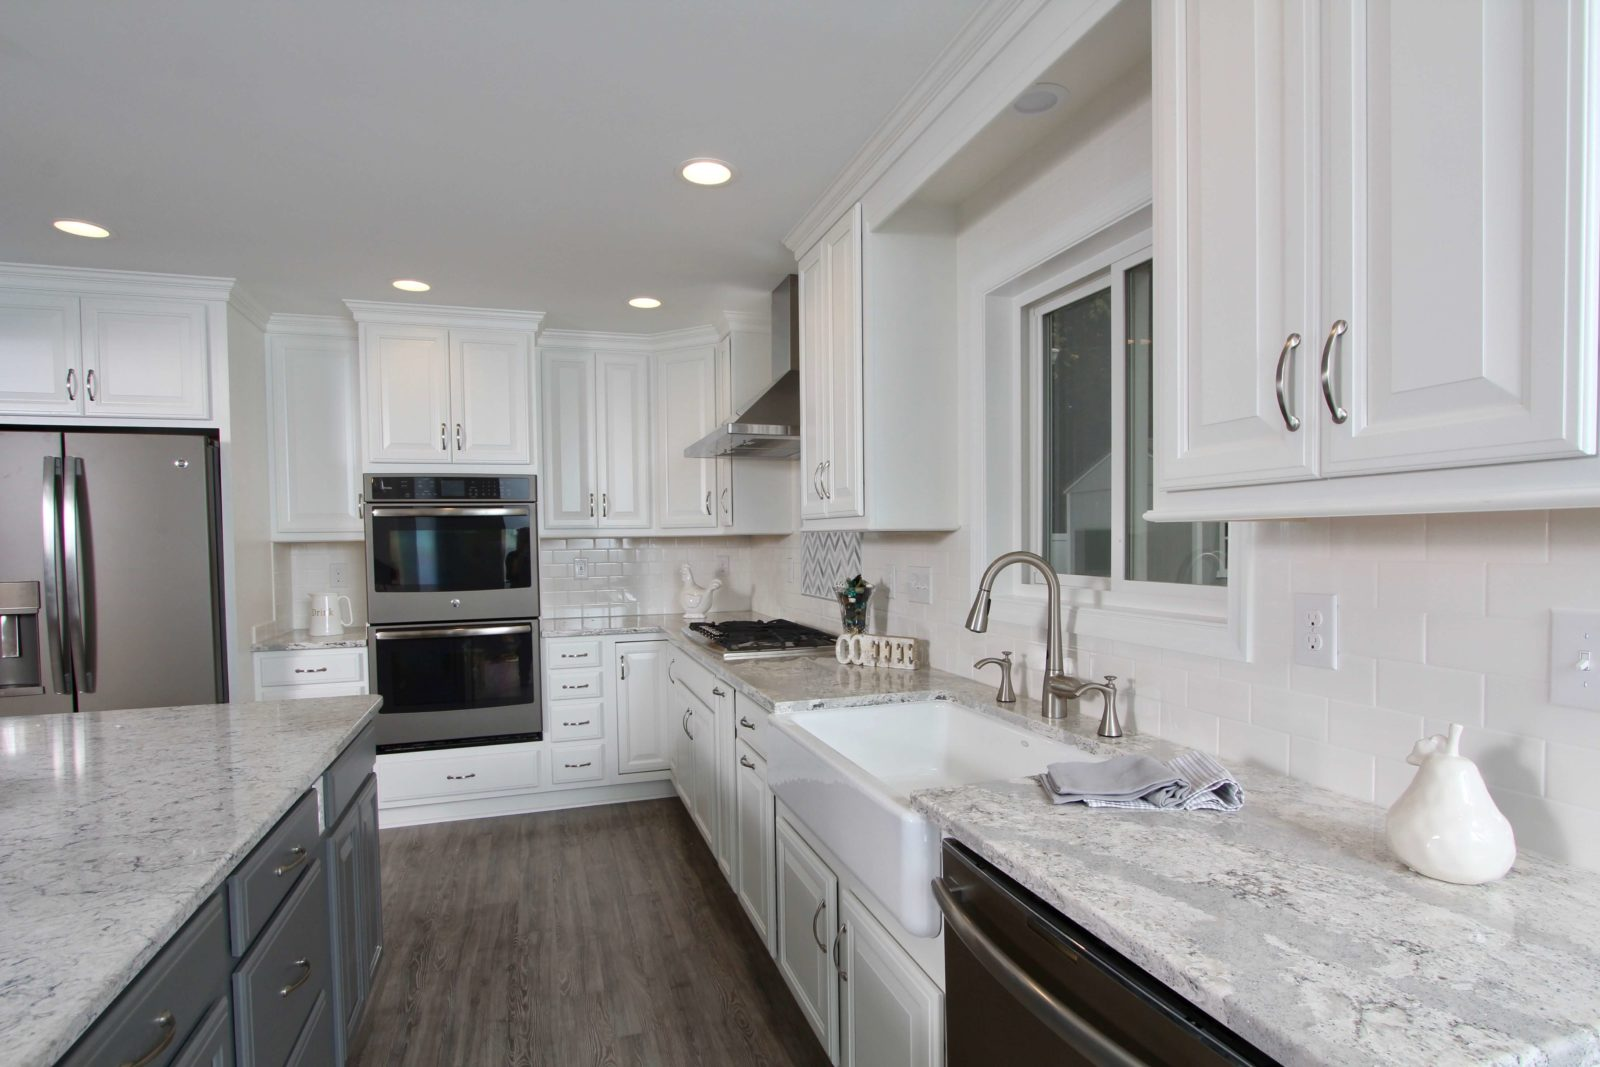 Kitchen Remodeling Bel Air Grey Mosaic Taylor Made Custom - Kitchen remodeling bel air md